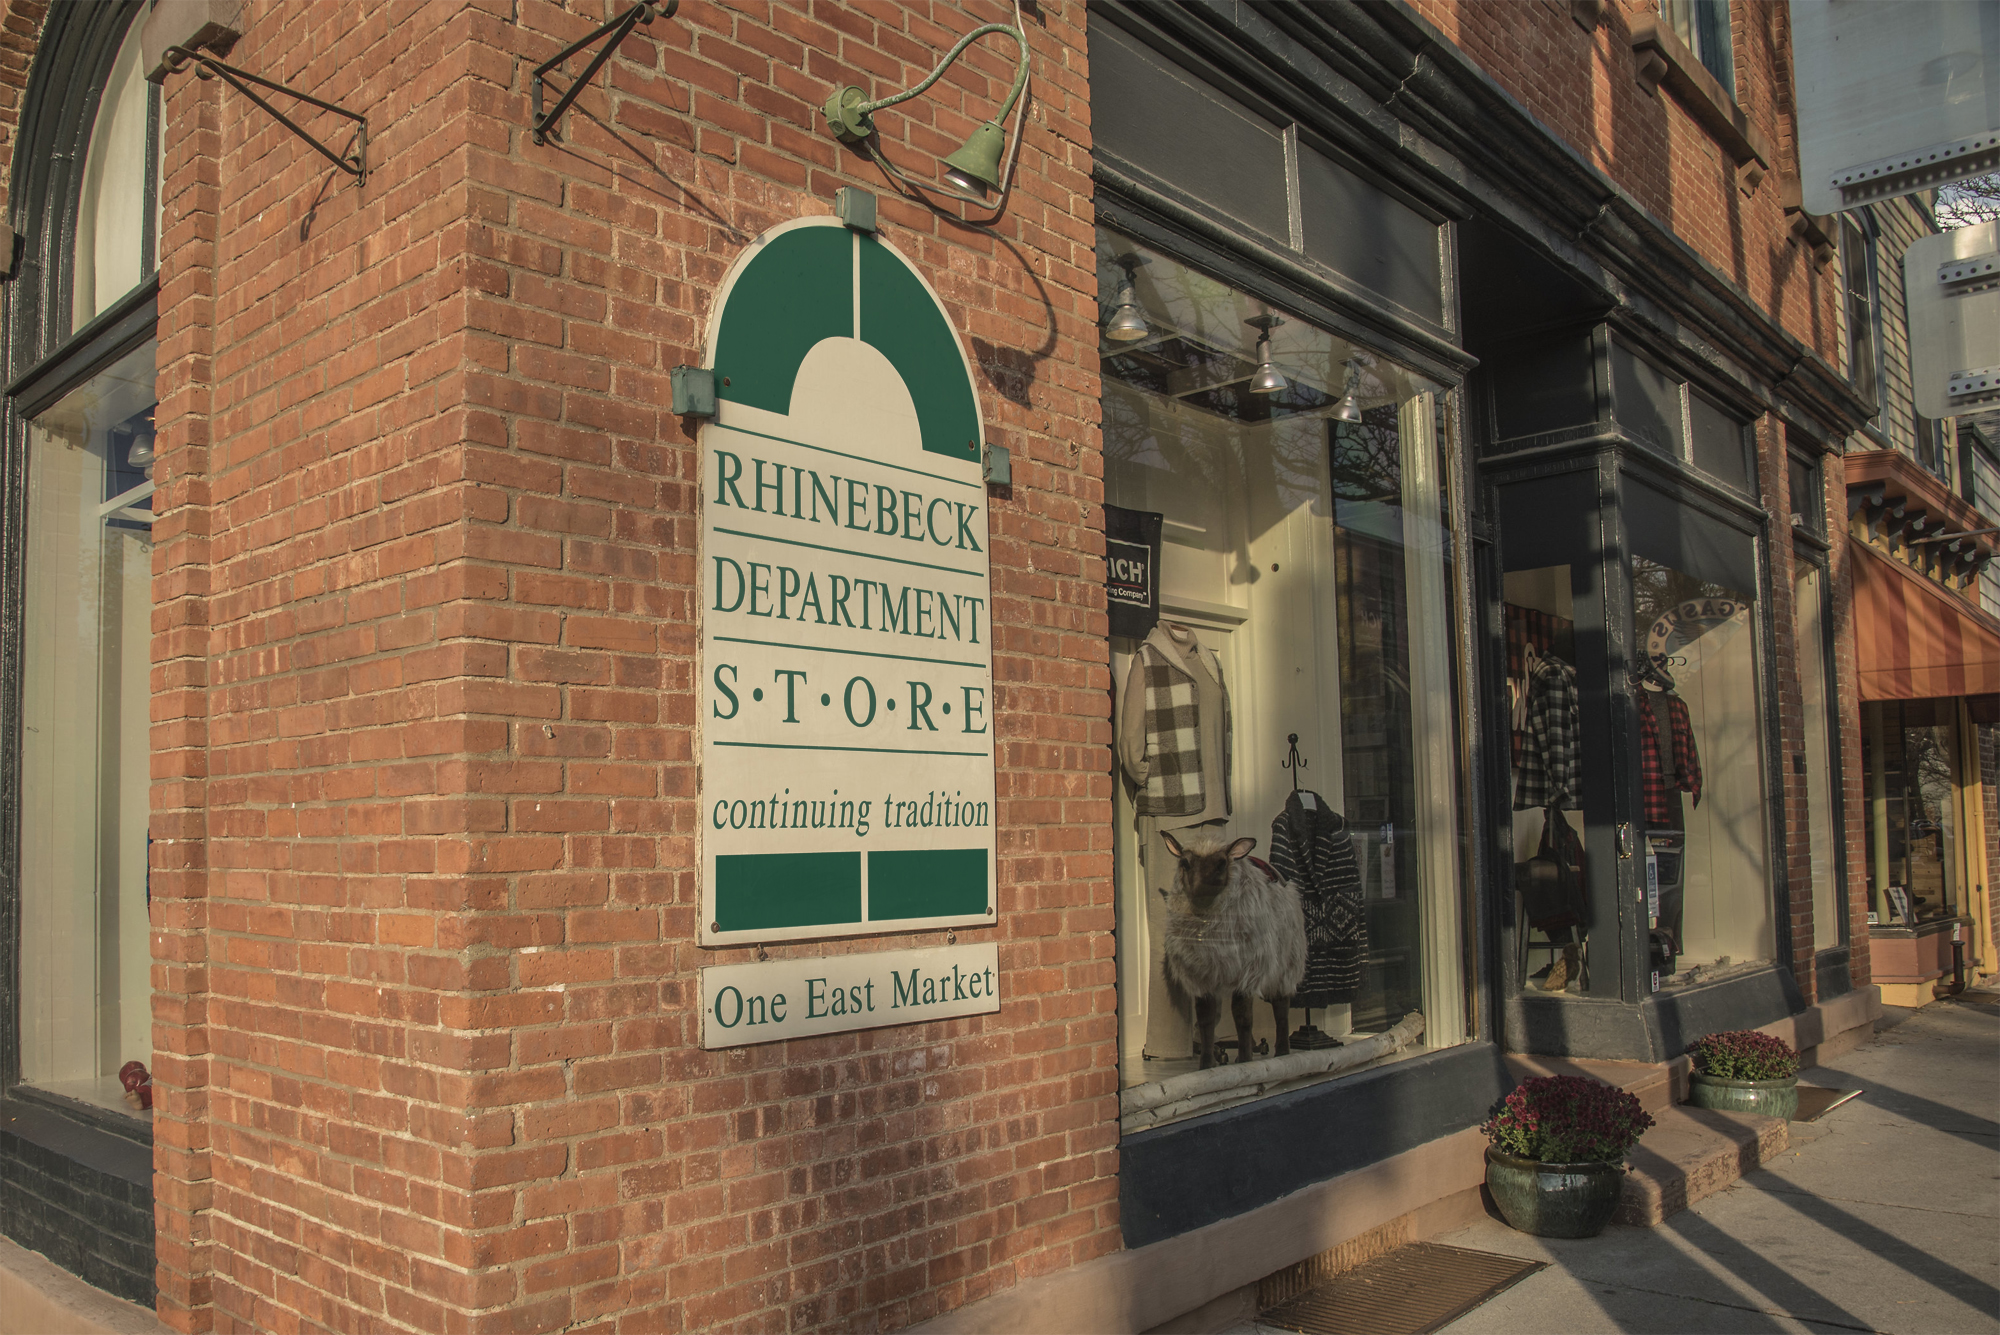 Rhinebeck Department Store, Country, Casual Clothes